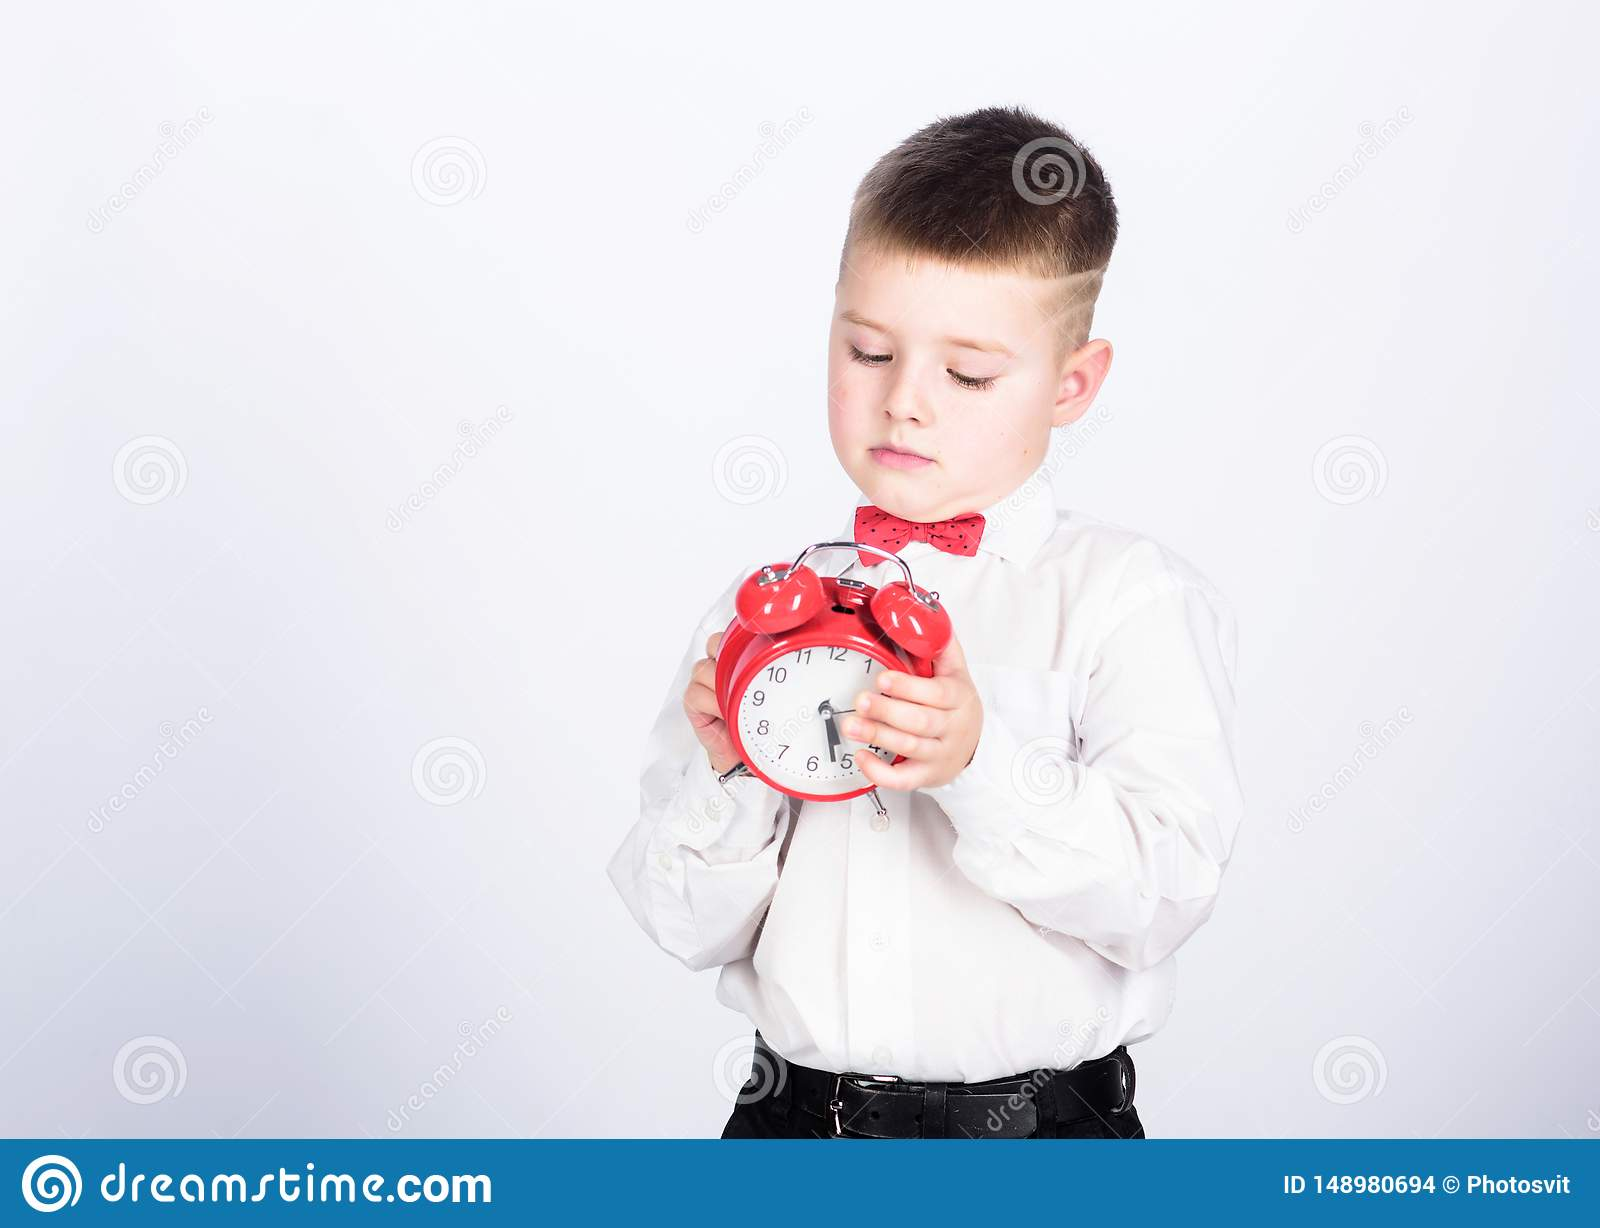 It is time. Schedule and timing. Morning routine. Schoolboy with alarm clock. Kid adorable boy white shirt red bow tie